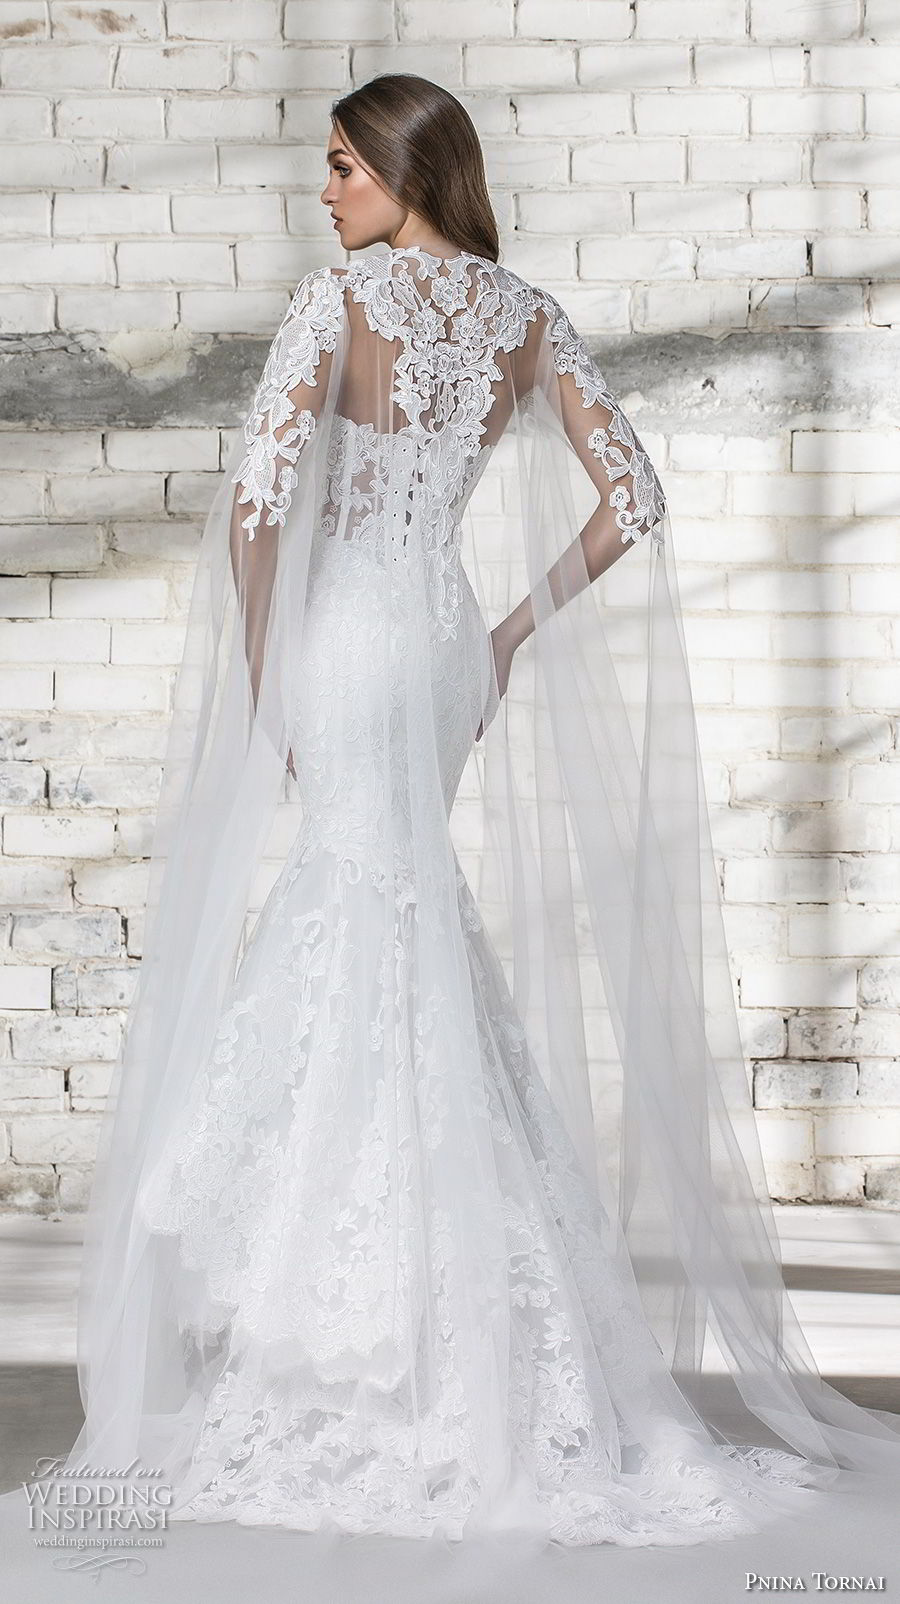 pnina tornai 2019 love bridal strapless deep plunging sweetheart neckline full embellished tiered skirt elegant romantic mermaid wedding dress with cape corset back sweep train (14) bv